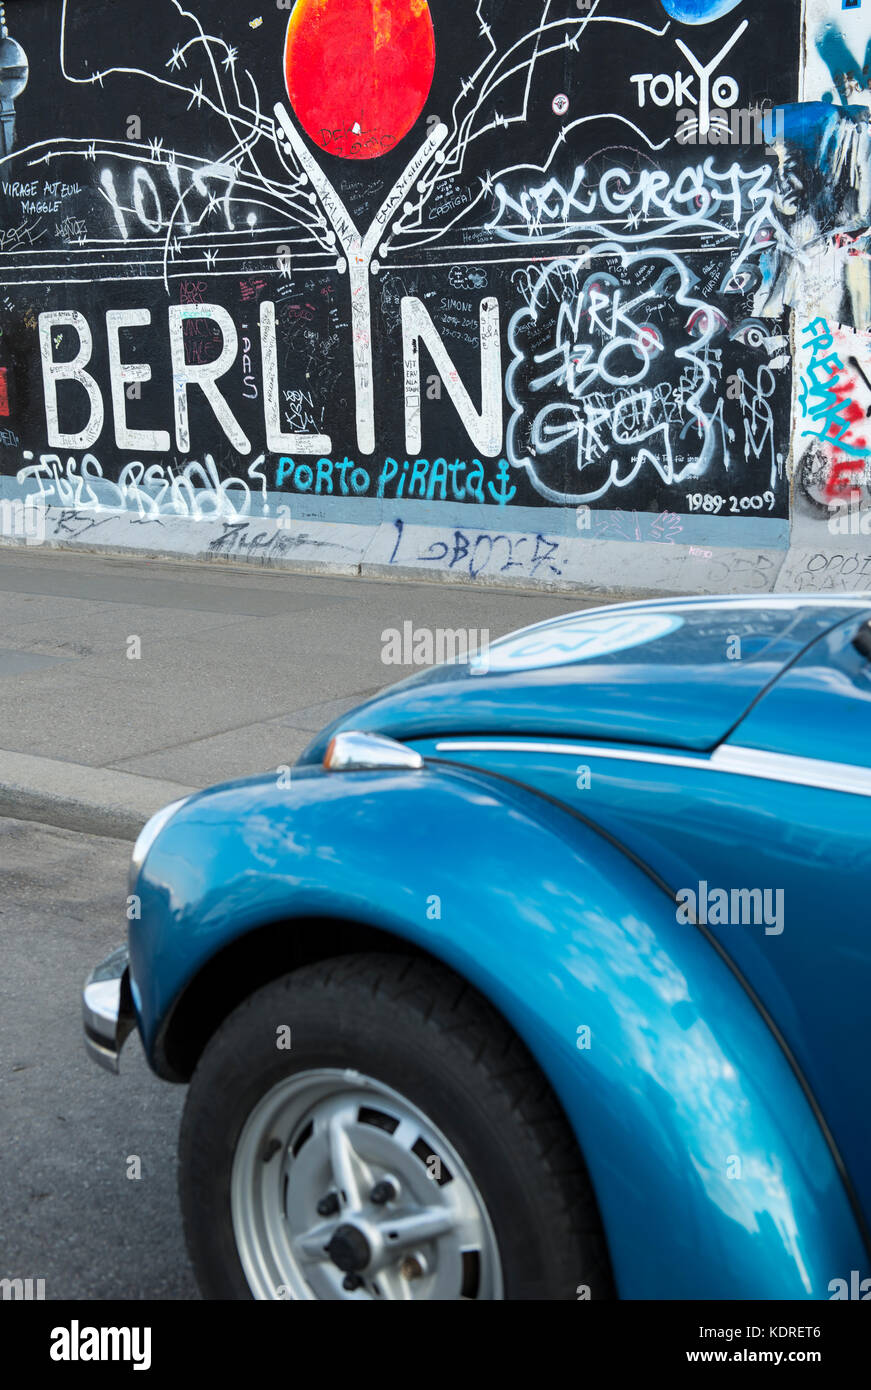 Car parked by the Berlin wall at the East Side Gallery in Berlin, Germany - Stock Image